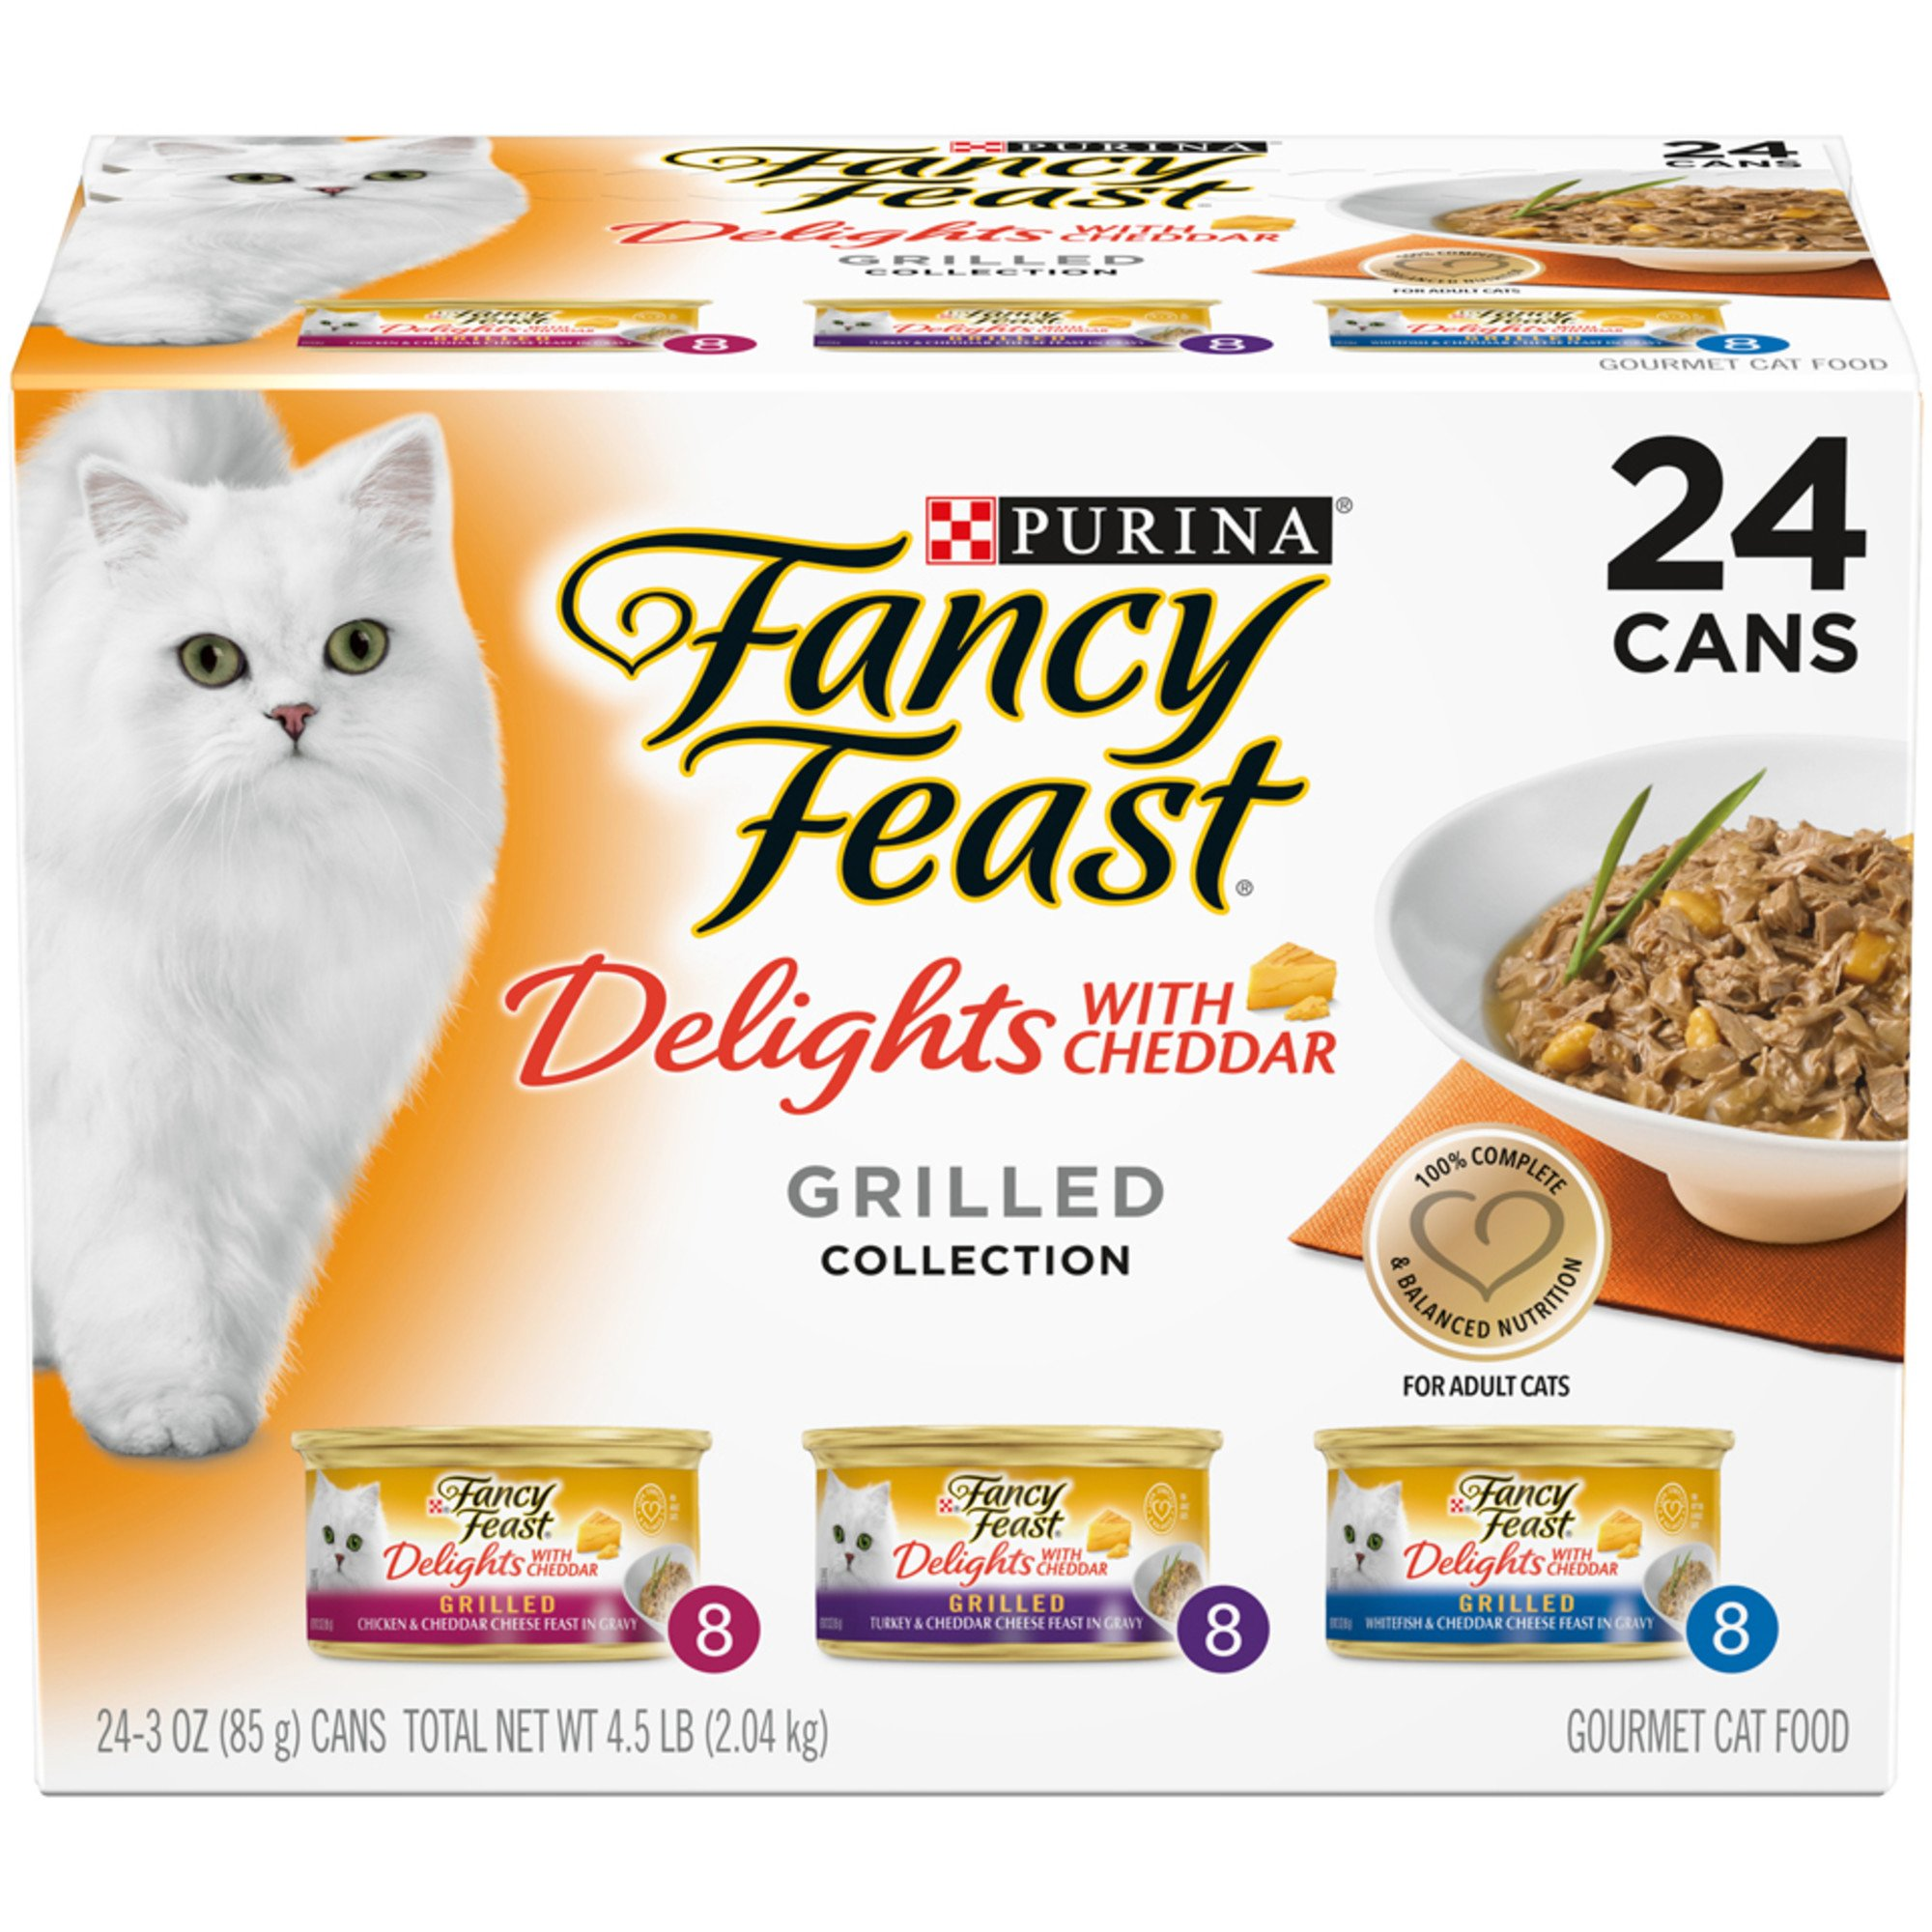 Purina Fancy Feast Gravy Delights With Cheddar Grilled Collection Wet Cat Food Variety Pack, 3 oz., Count of 24